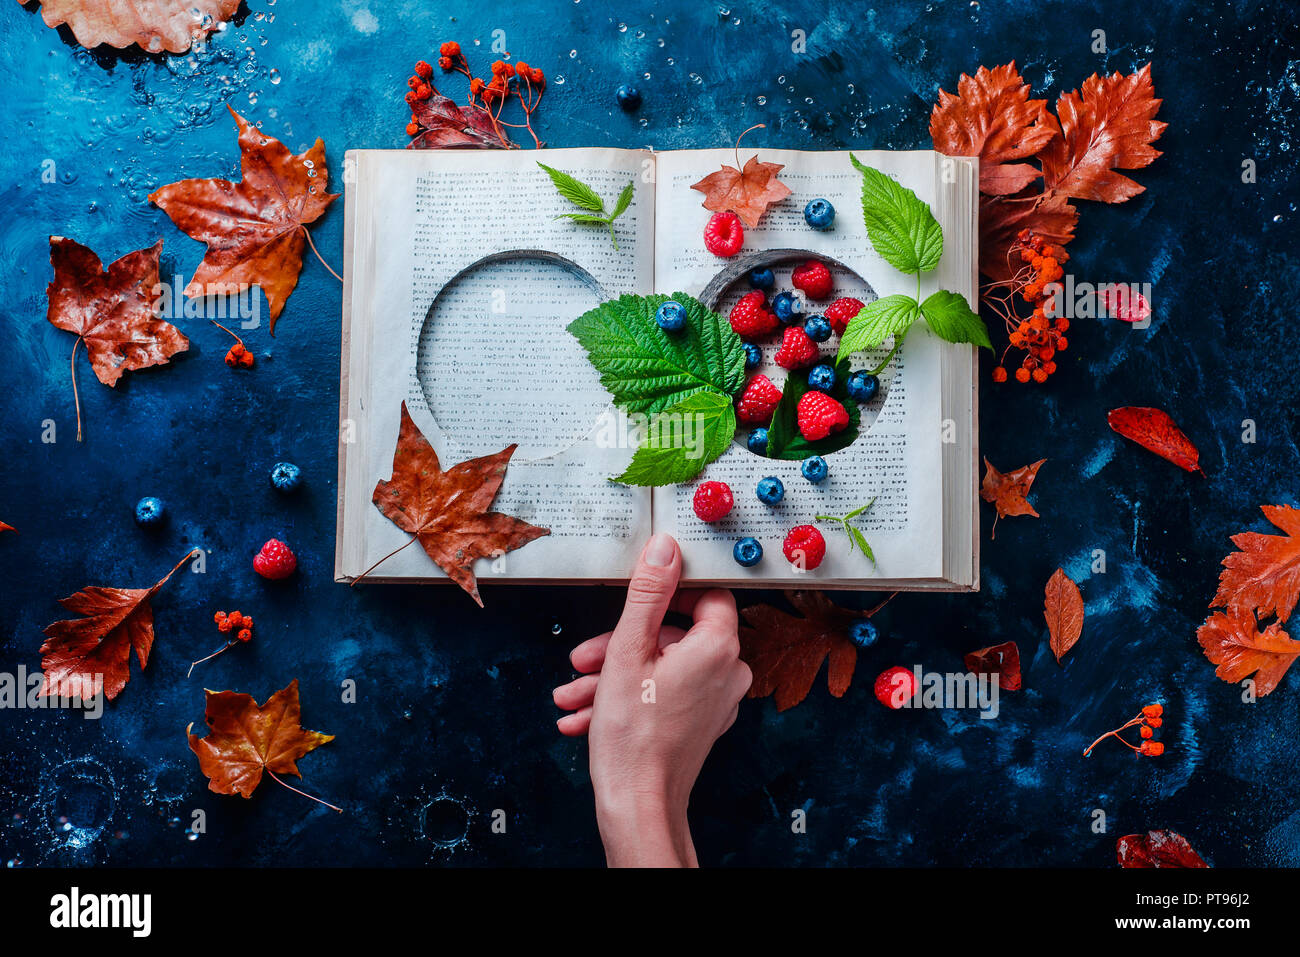 Secret storage book with last summer berries under an autumn rain. Preserving fleeting joys concept with copy space - Stock Image